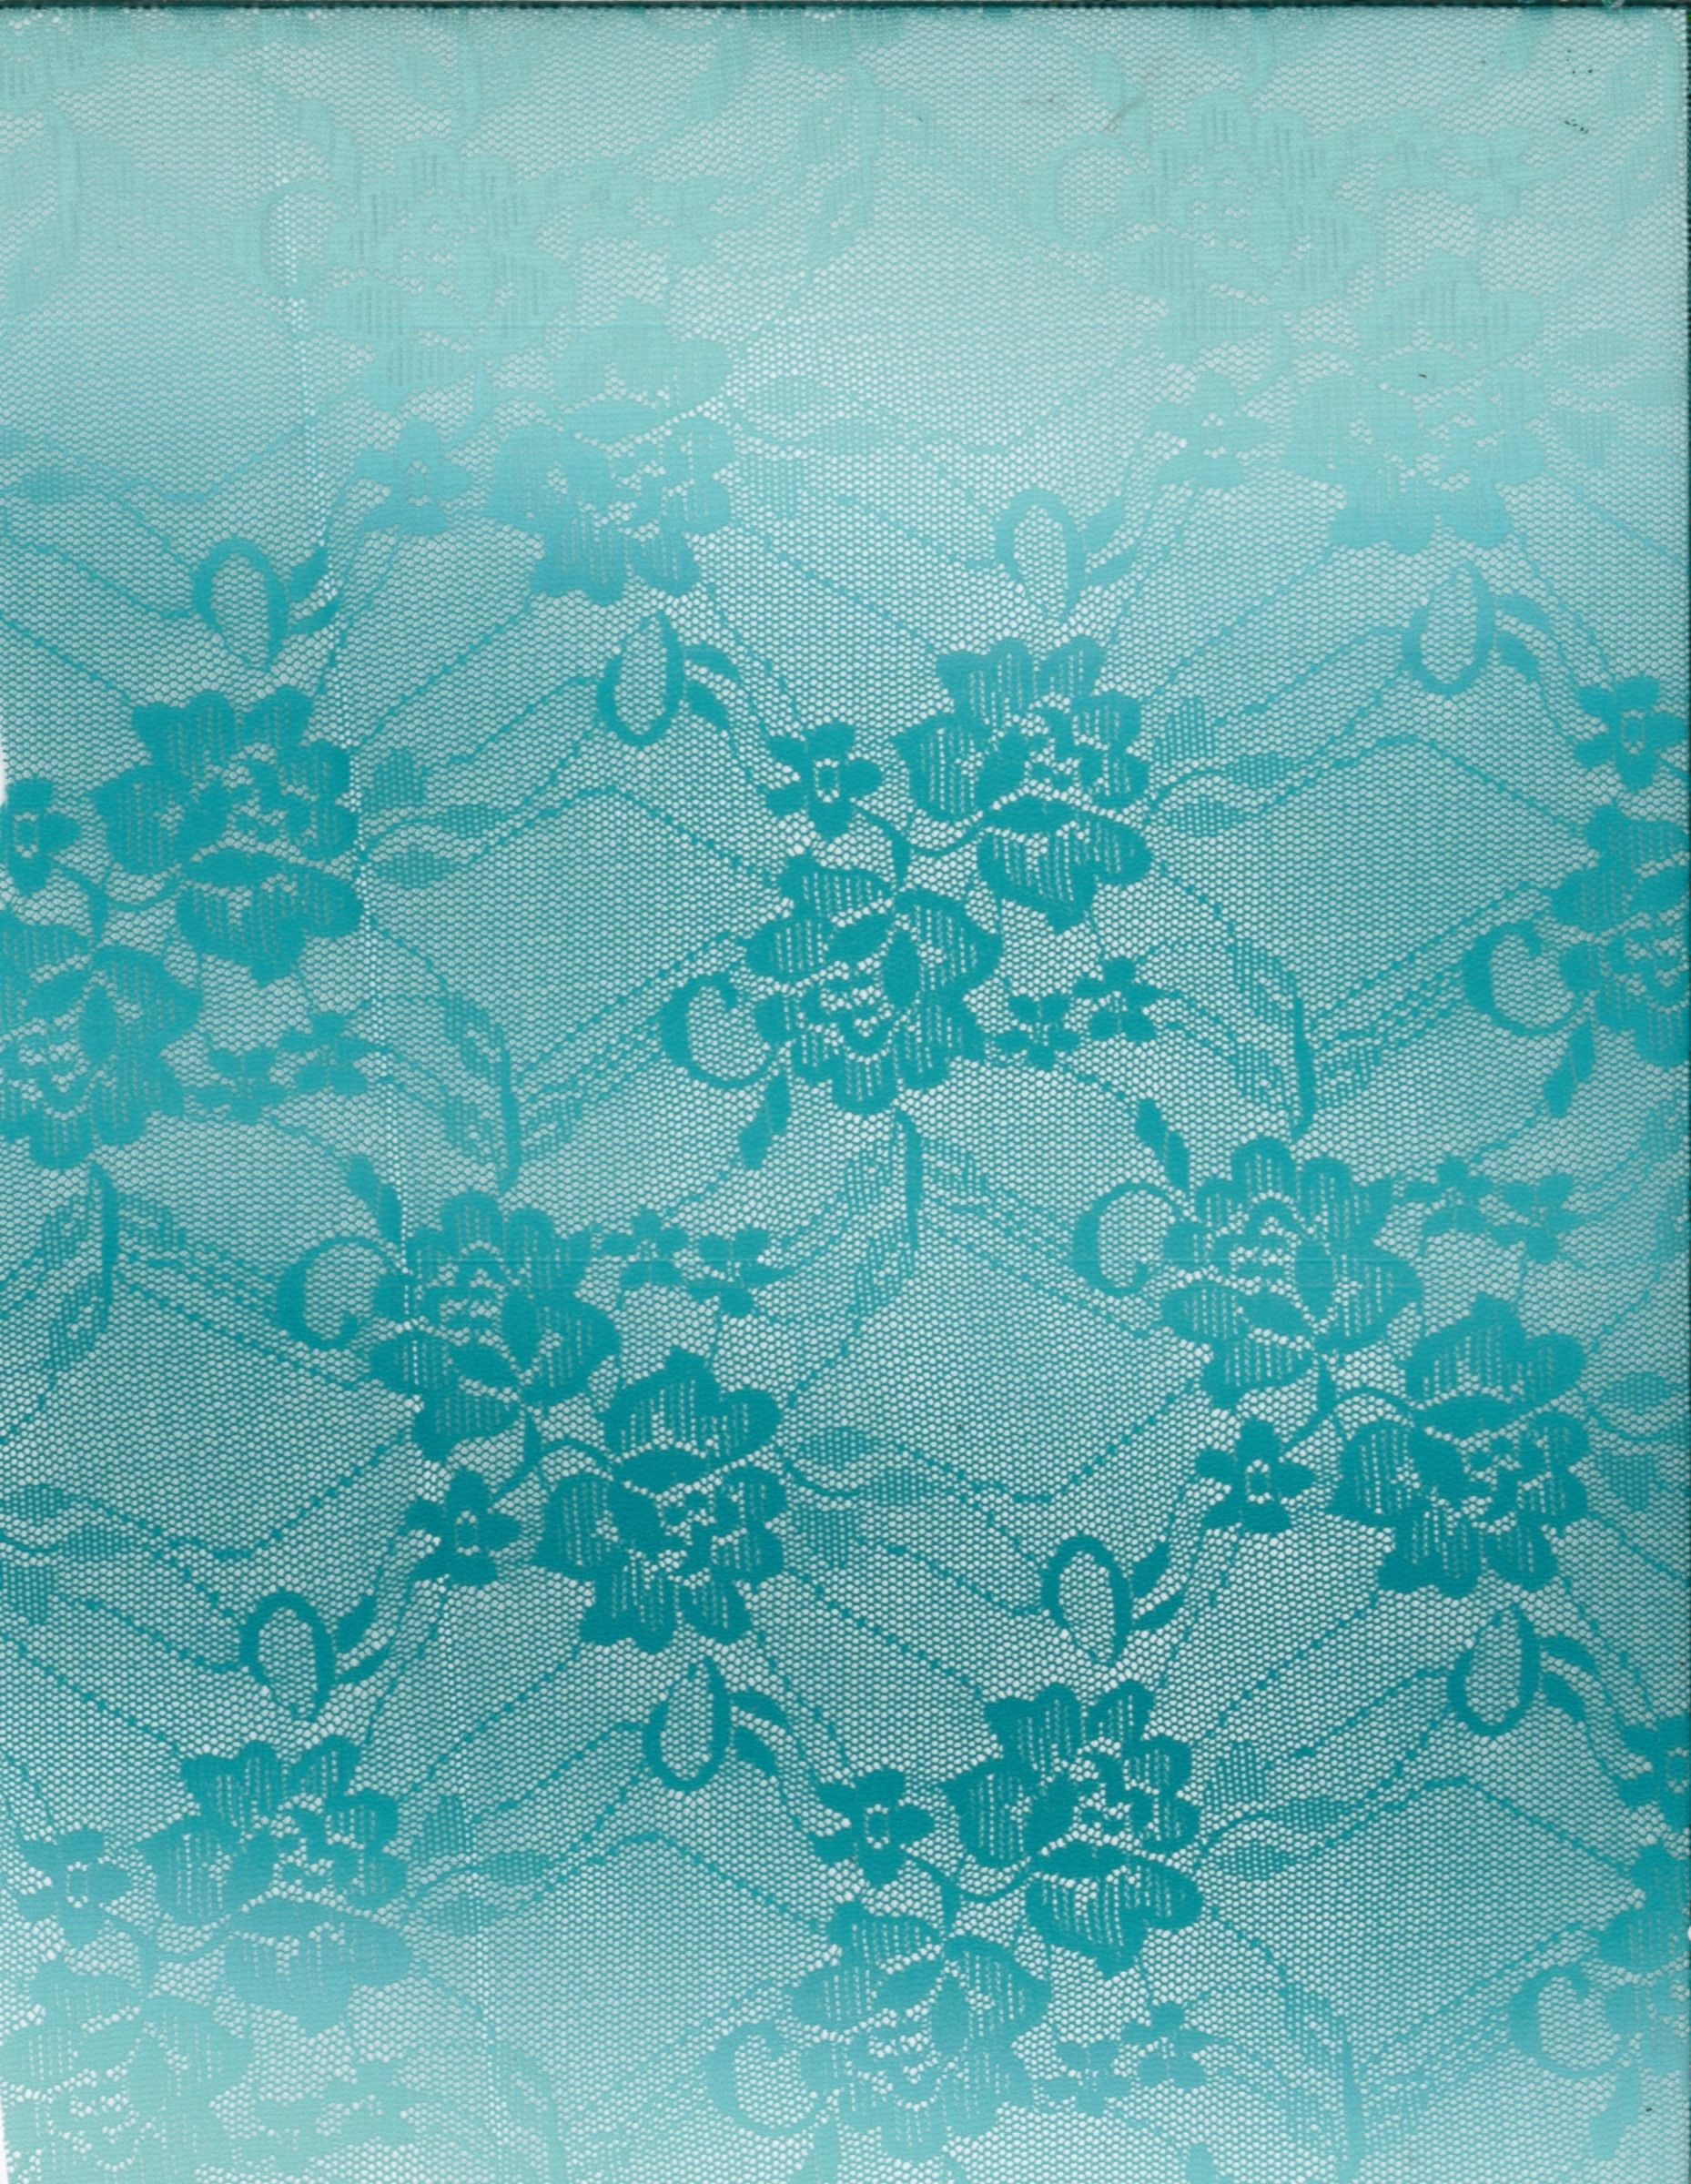 Fashion Lace Fabric- Ombre Stretch Lace JadeFashion Lace Fabric- Ombre Stretch Lace Jade,